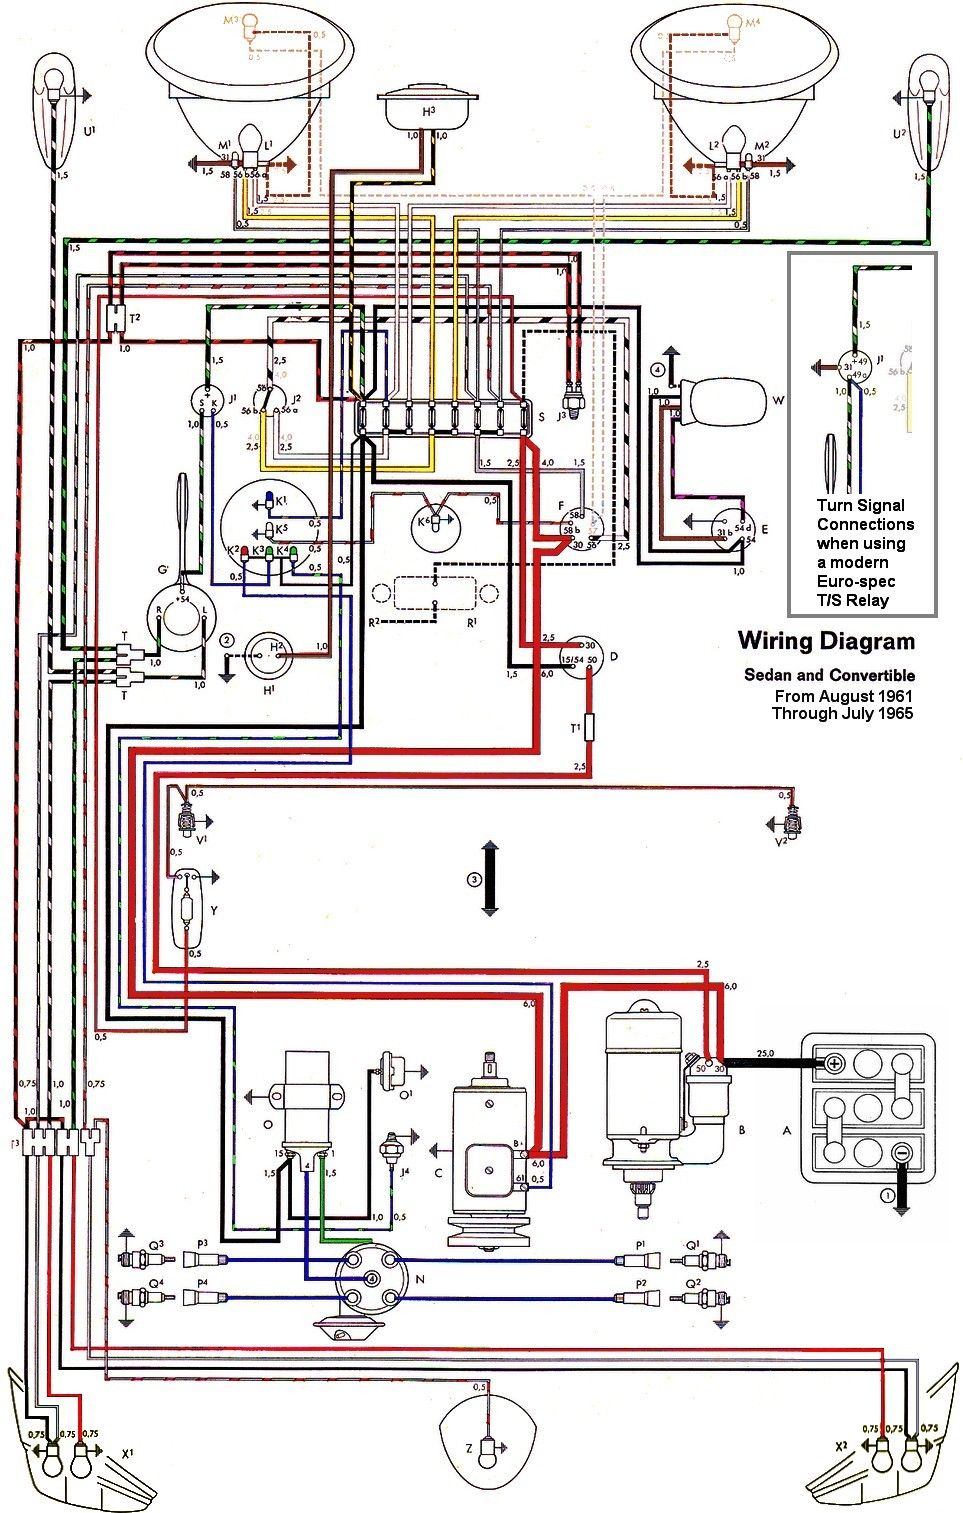 hight resolution of 1964 vw wiring diagram diagram data schema 1964 vw wiring diagram